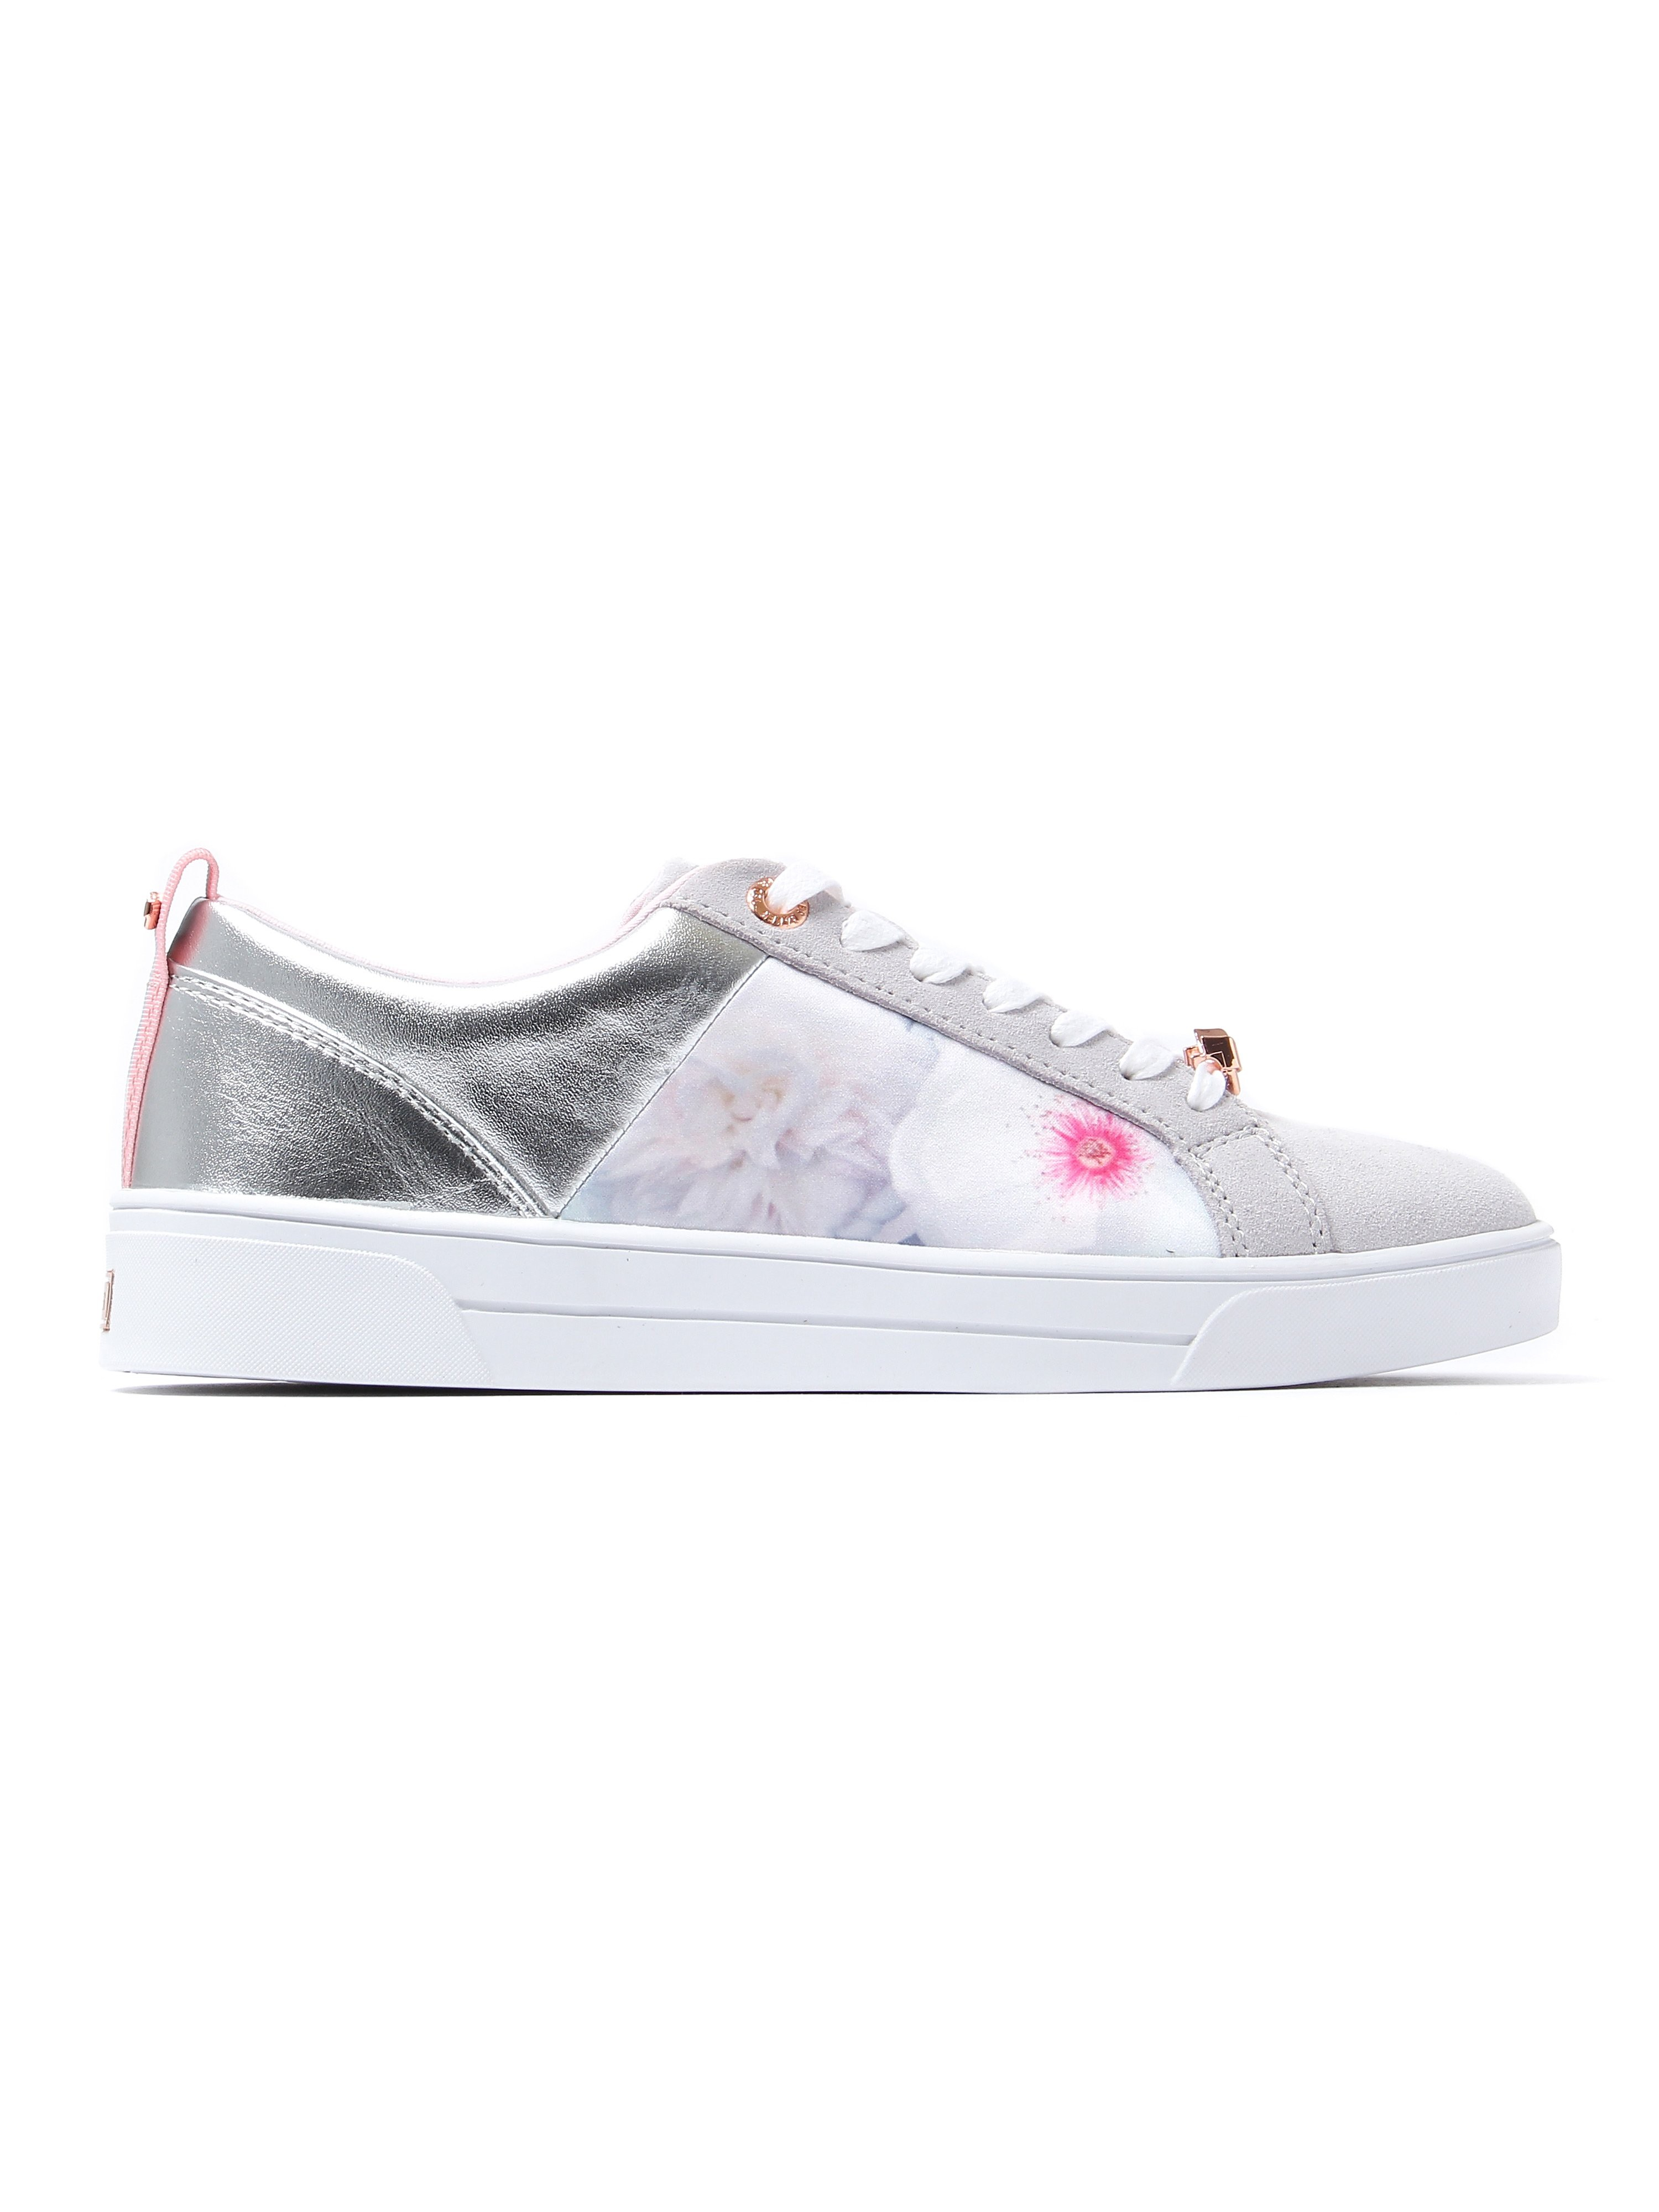 Ted Baker Women's Fushar Trainers - Grey Chelsea